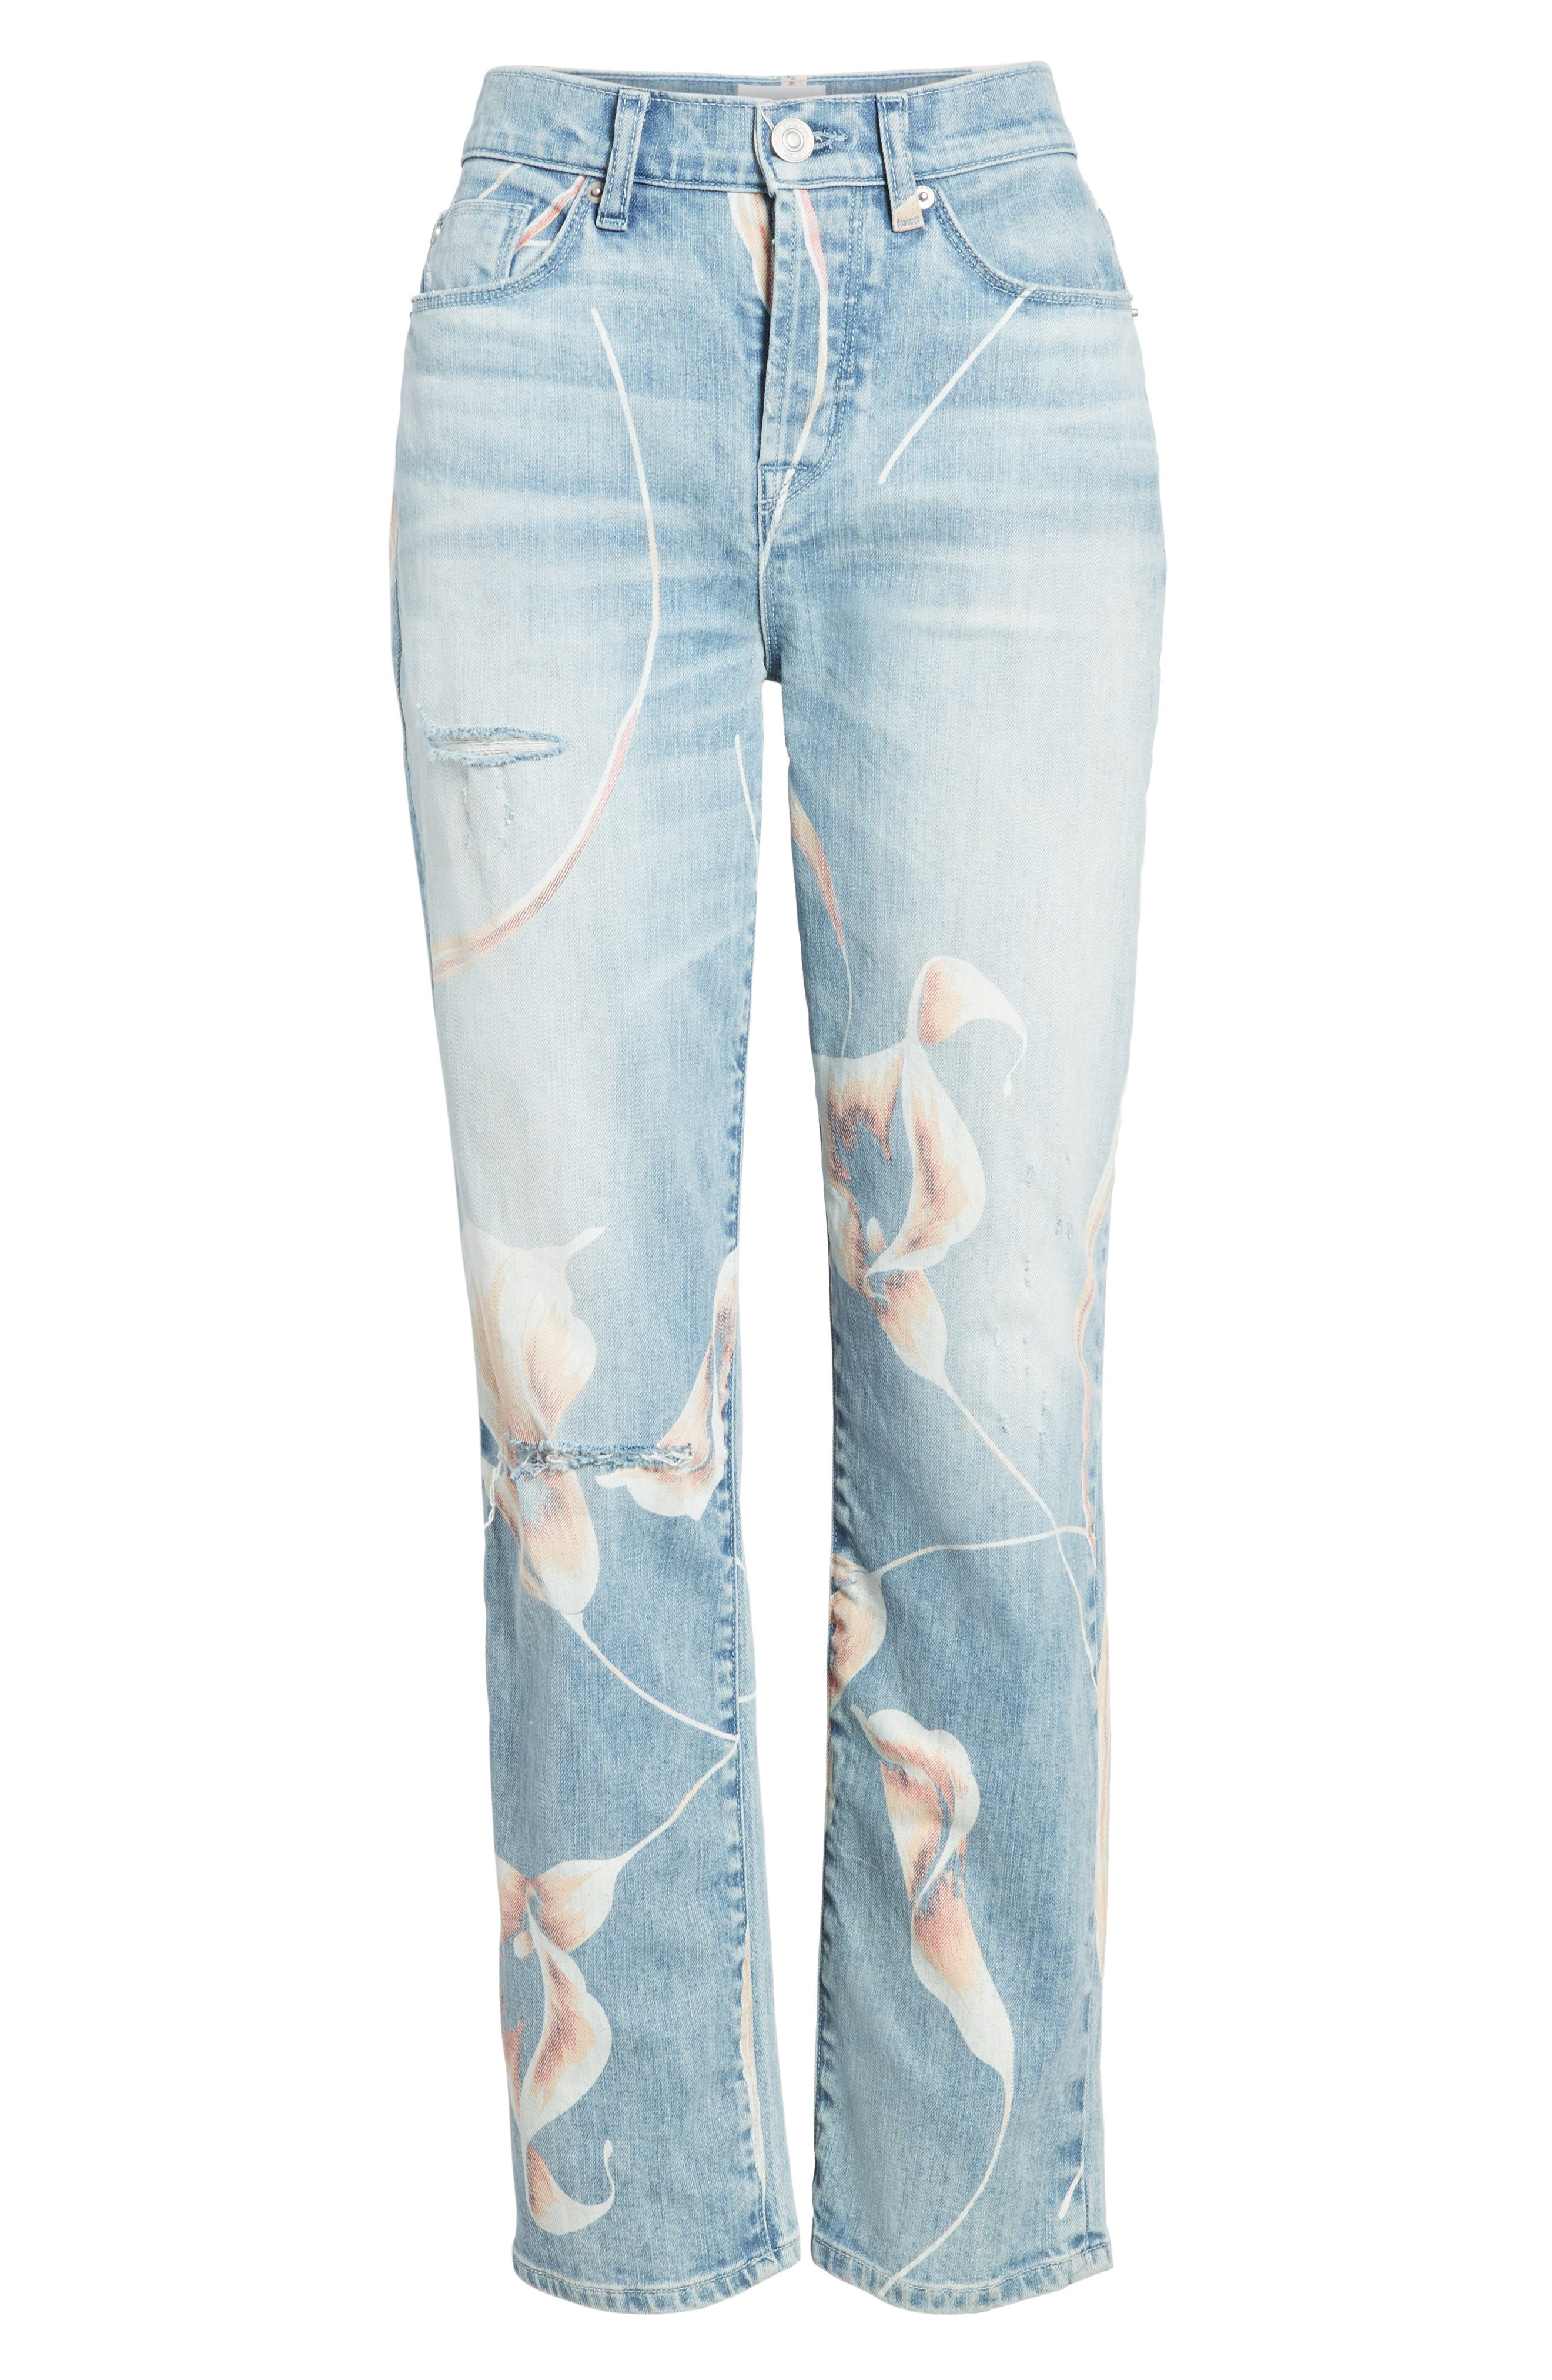 Zoeey High Waist Ankle Straight Leg Jeans,                             Alternate thumbnail 7, color,                             In Bloom